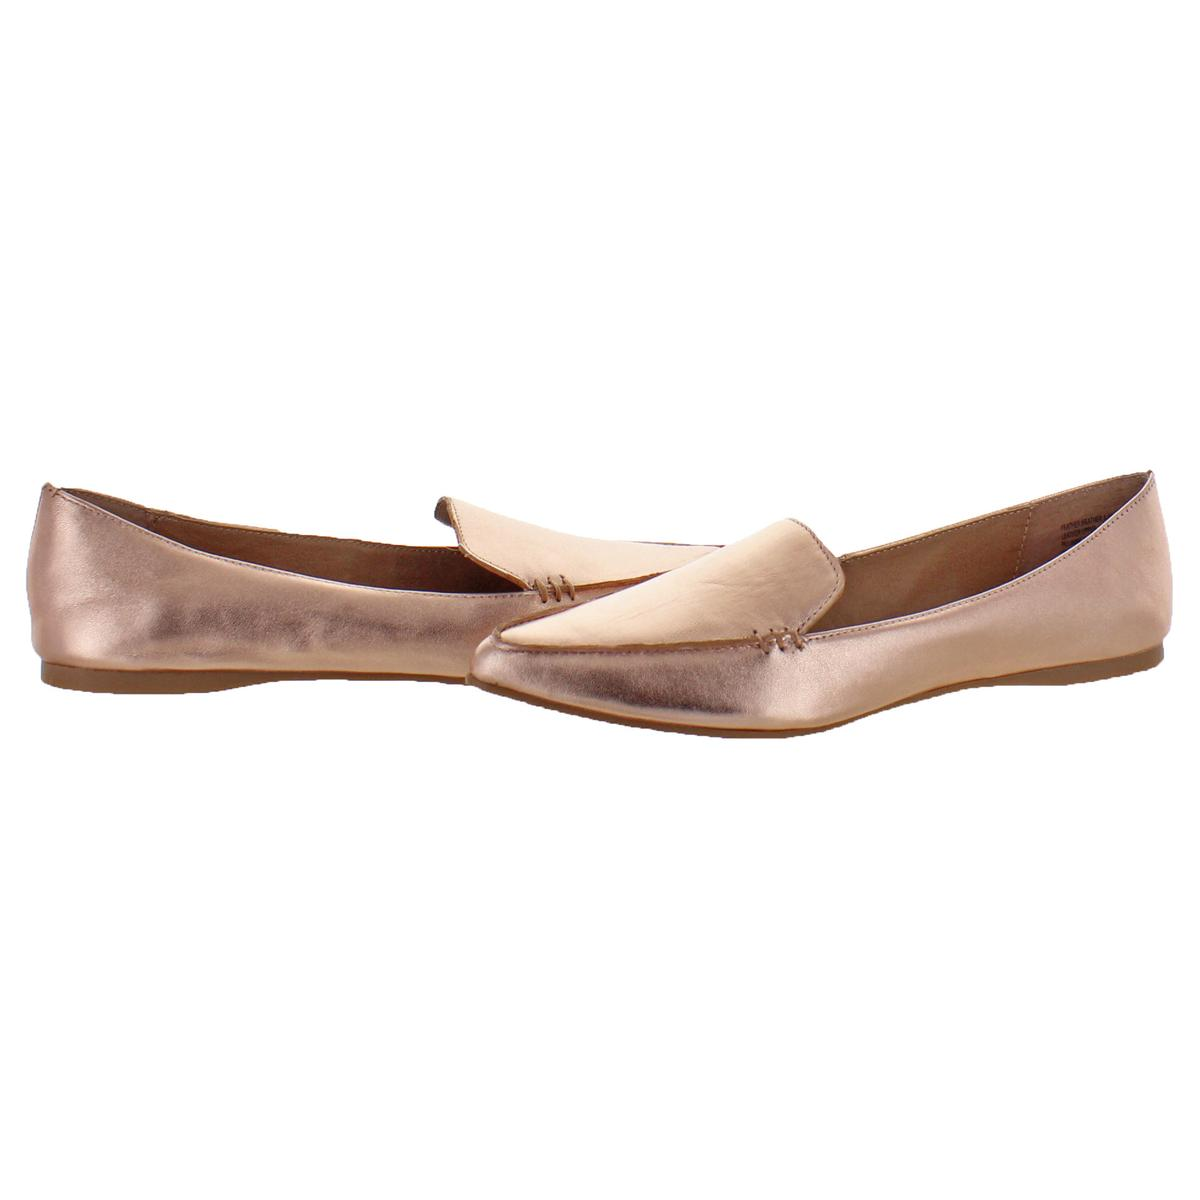 Steve-Madden-Womens-Feather-Dress-Loafers-Shoes-BHFO-7353 thumbnail 10